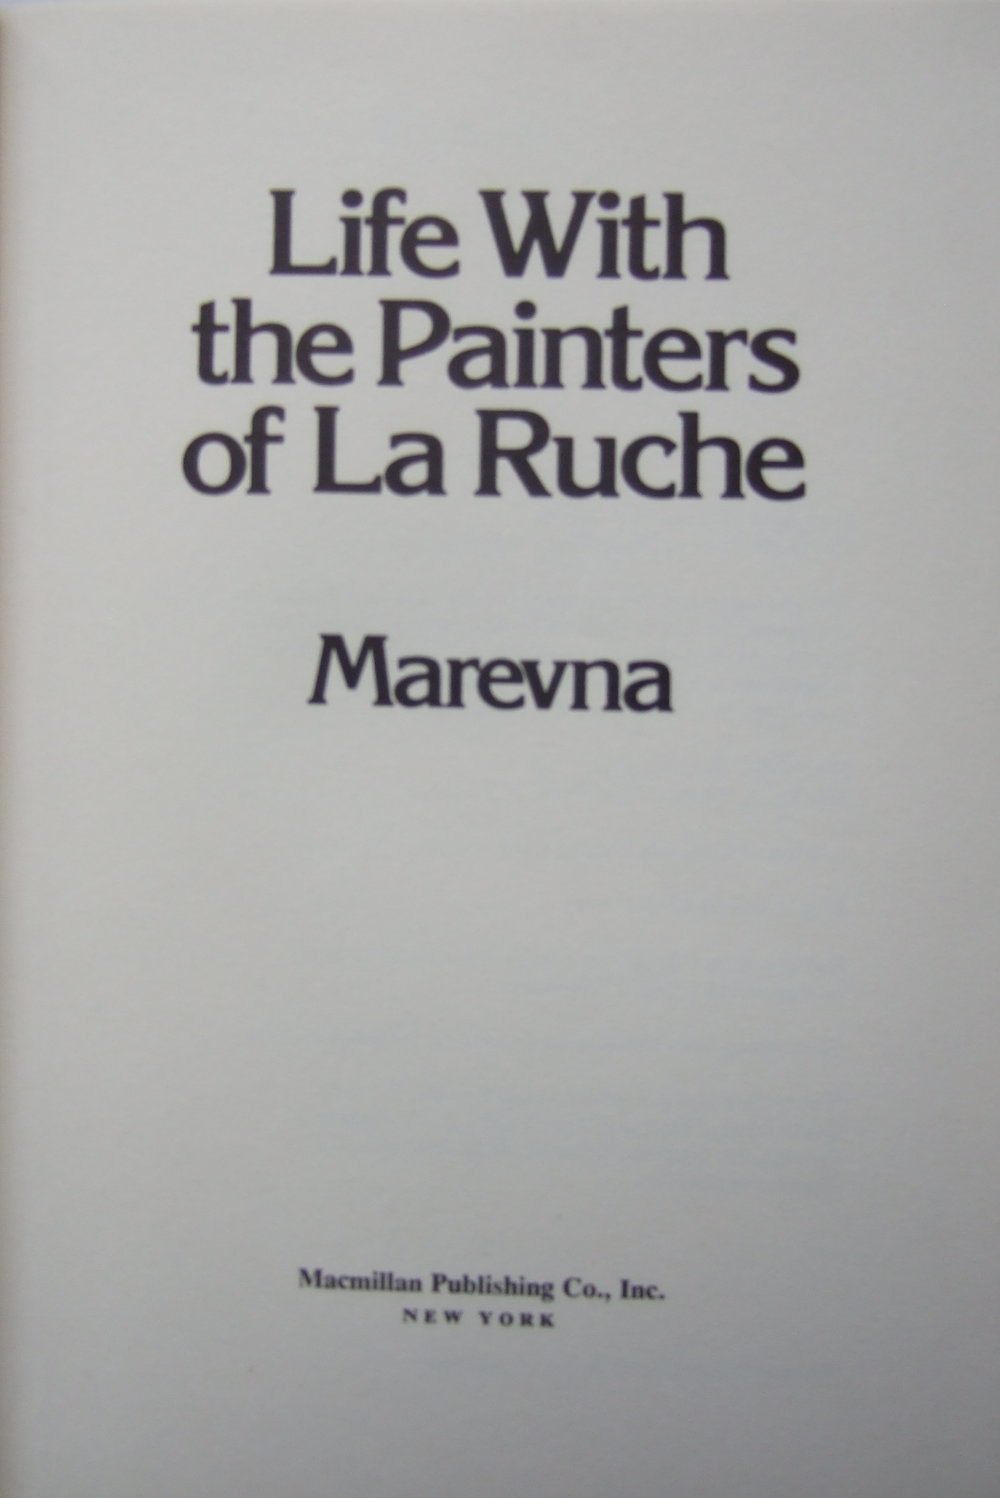 """Life with the painters of La Ruche"" book by Marevna."